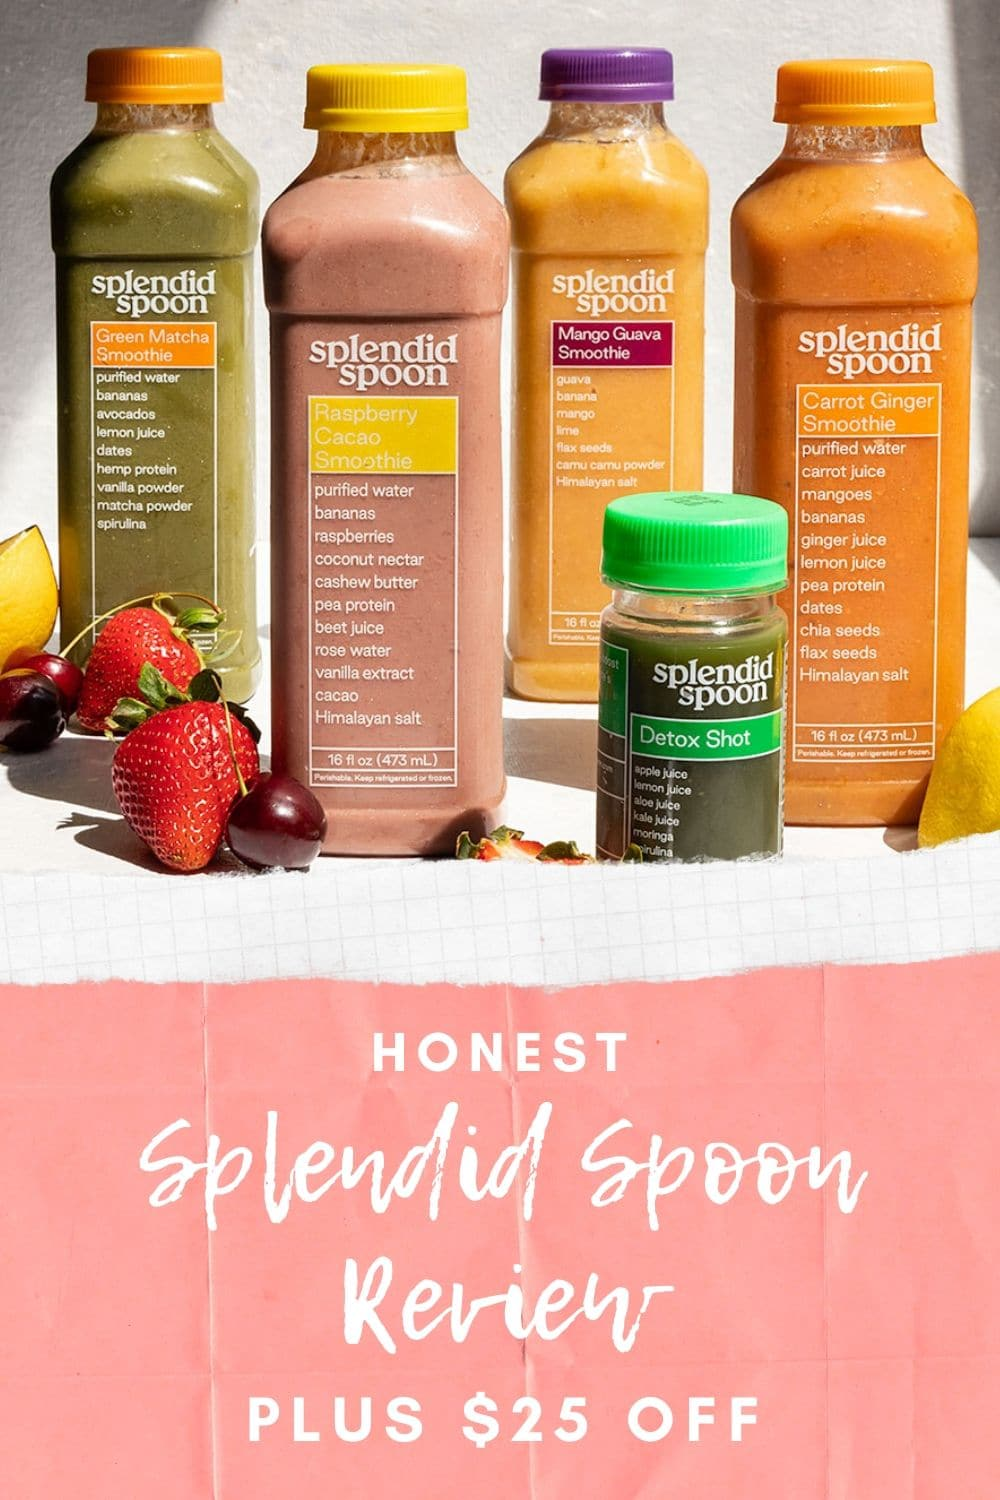 splendid spoon review with picture of smoothies